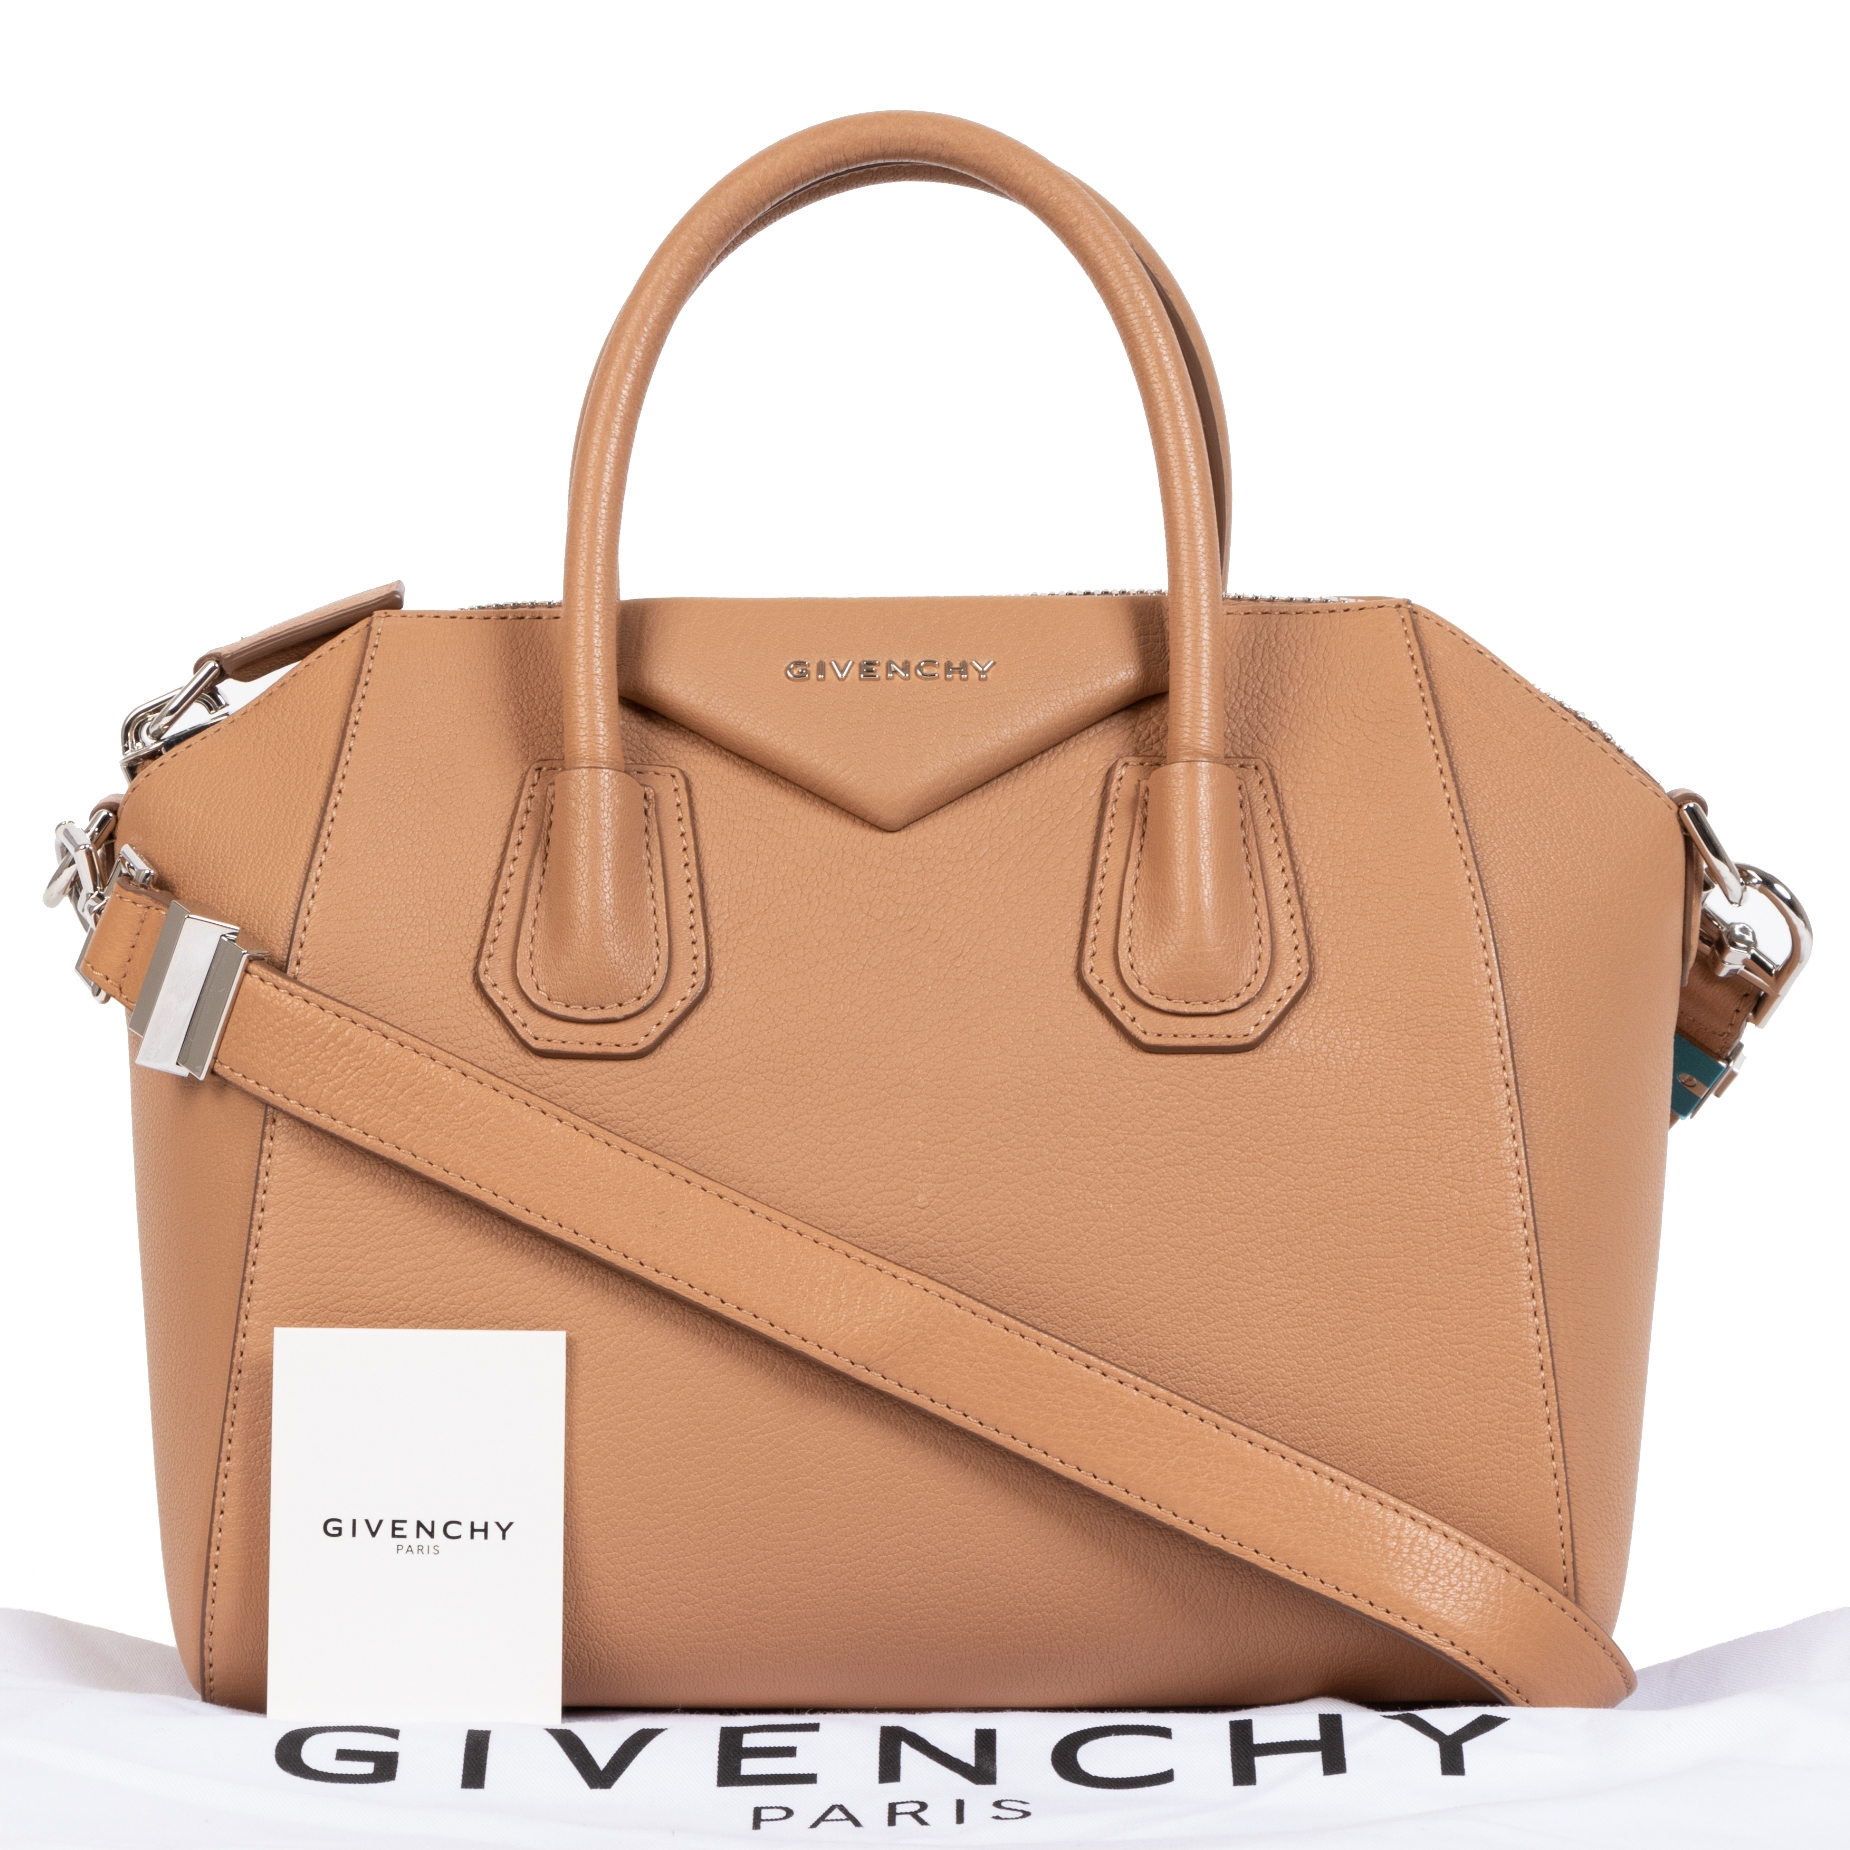 Are you looking for an authentic Givenchy Antigona Beige Small Leather Bag